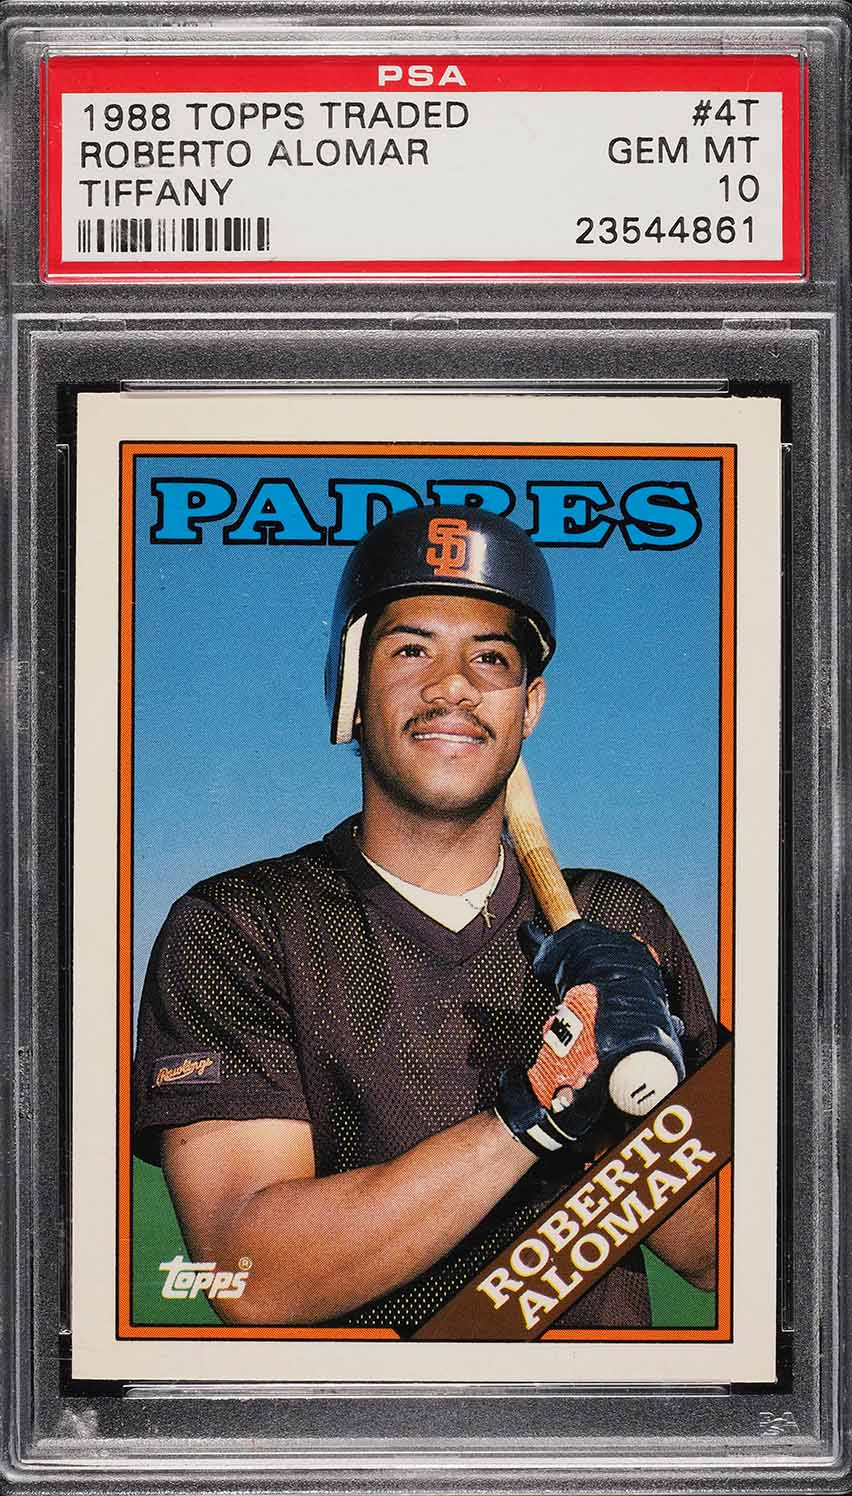 Image of: 1988 Topps Traded Tiffany Roberto Alomar ROOKIE RC #4T PSA 10 GEM MINT (PWCC)